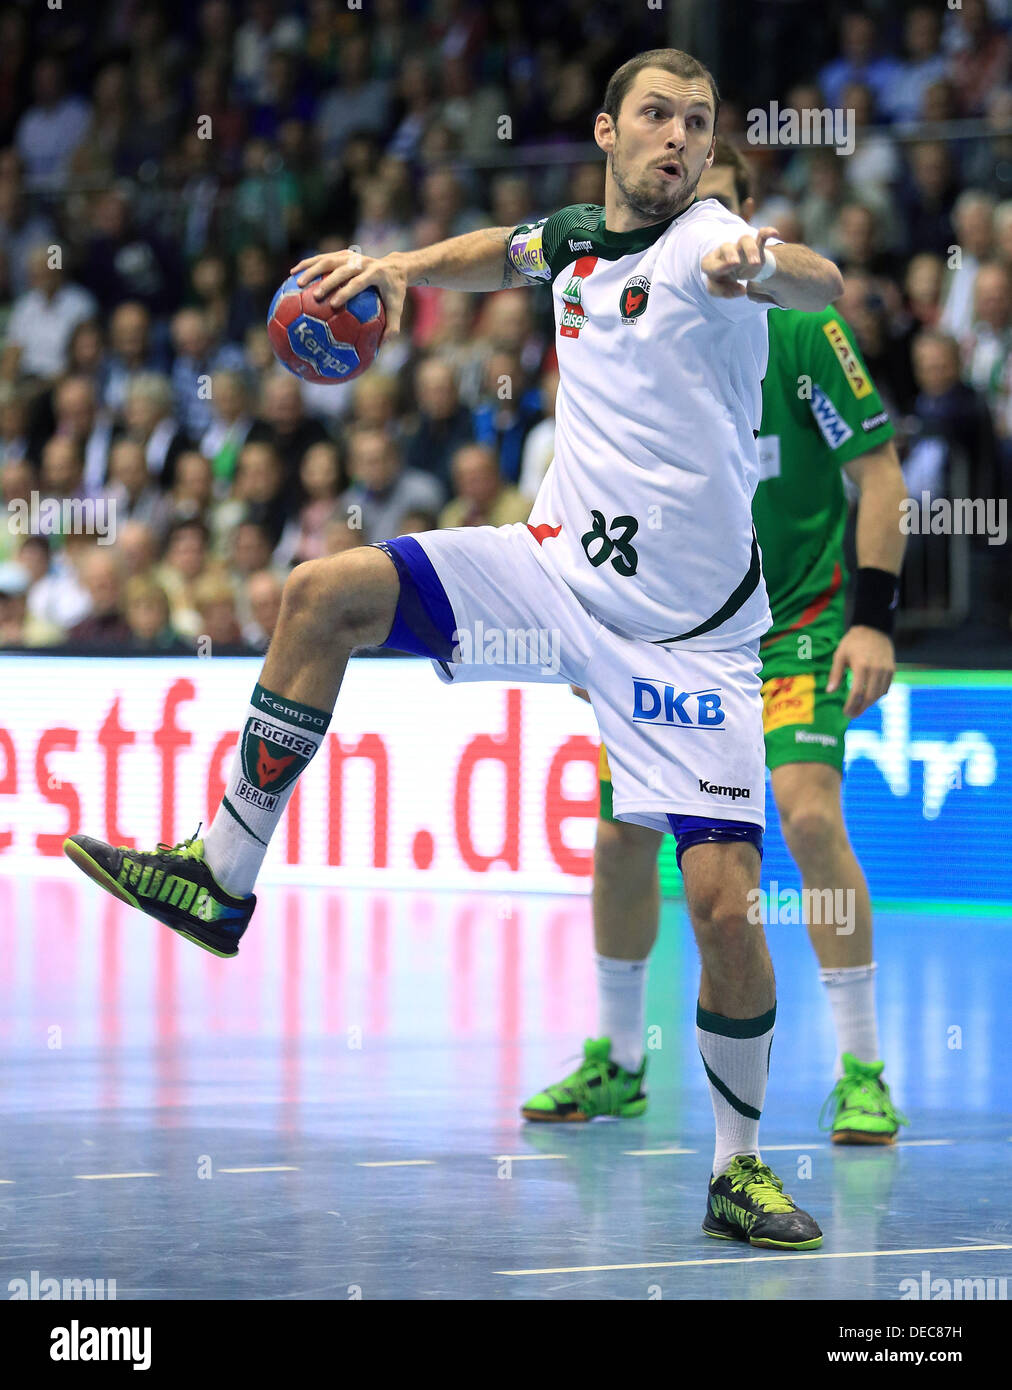 Berlin'sFrederik Petersen in action during the Bundesliga handball match between SC Magdeburg and Fuechse Berlin at Getec-Arena in Magdeburg, Germany, 15 September 2013. Photo:JENS WOLF - Stock Image